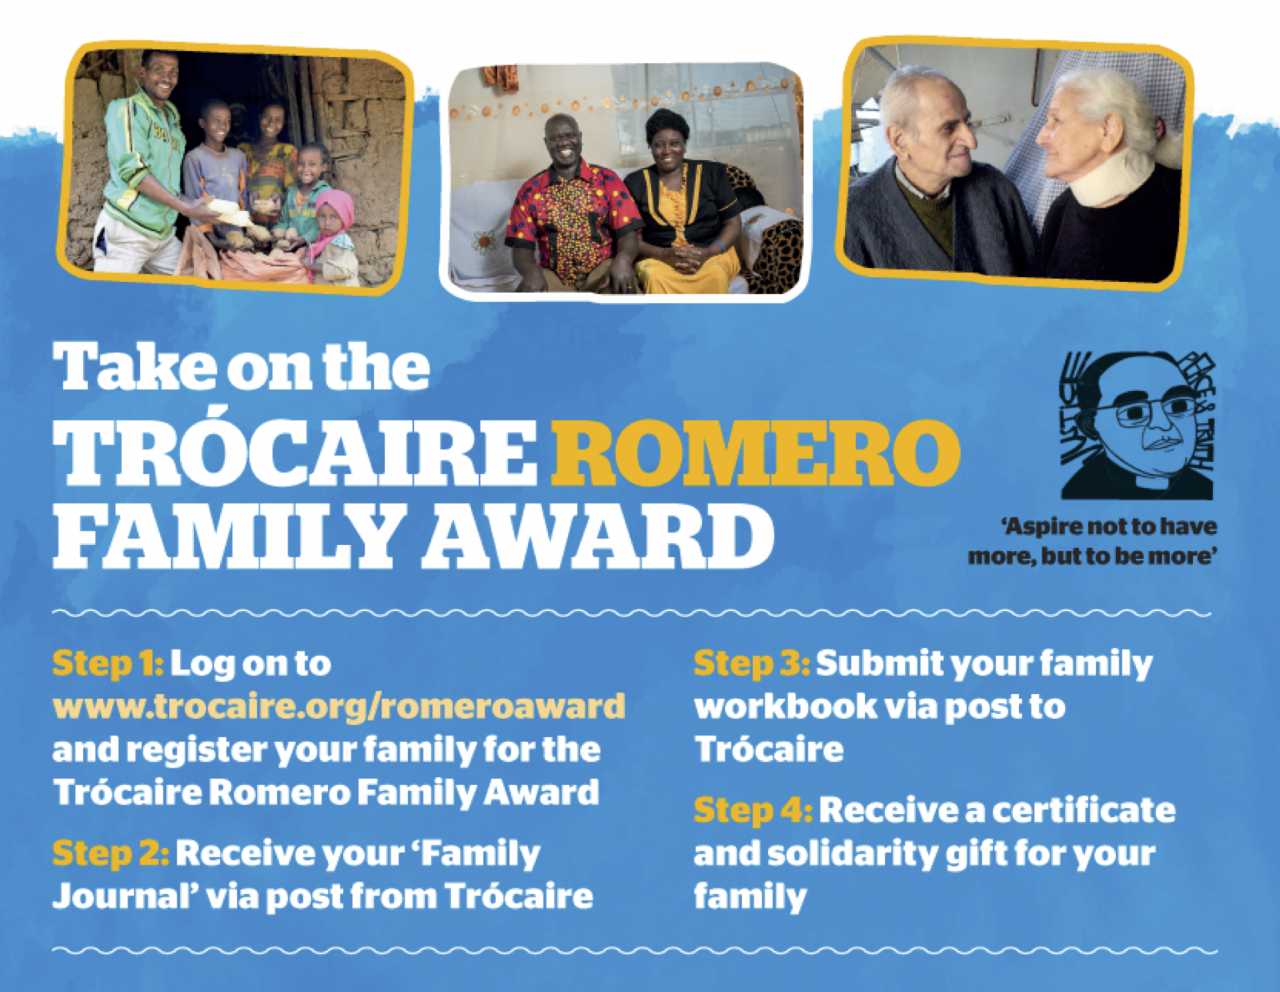 Families can take on the Trócaire Romero Award as they prepare for WMOF2018